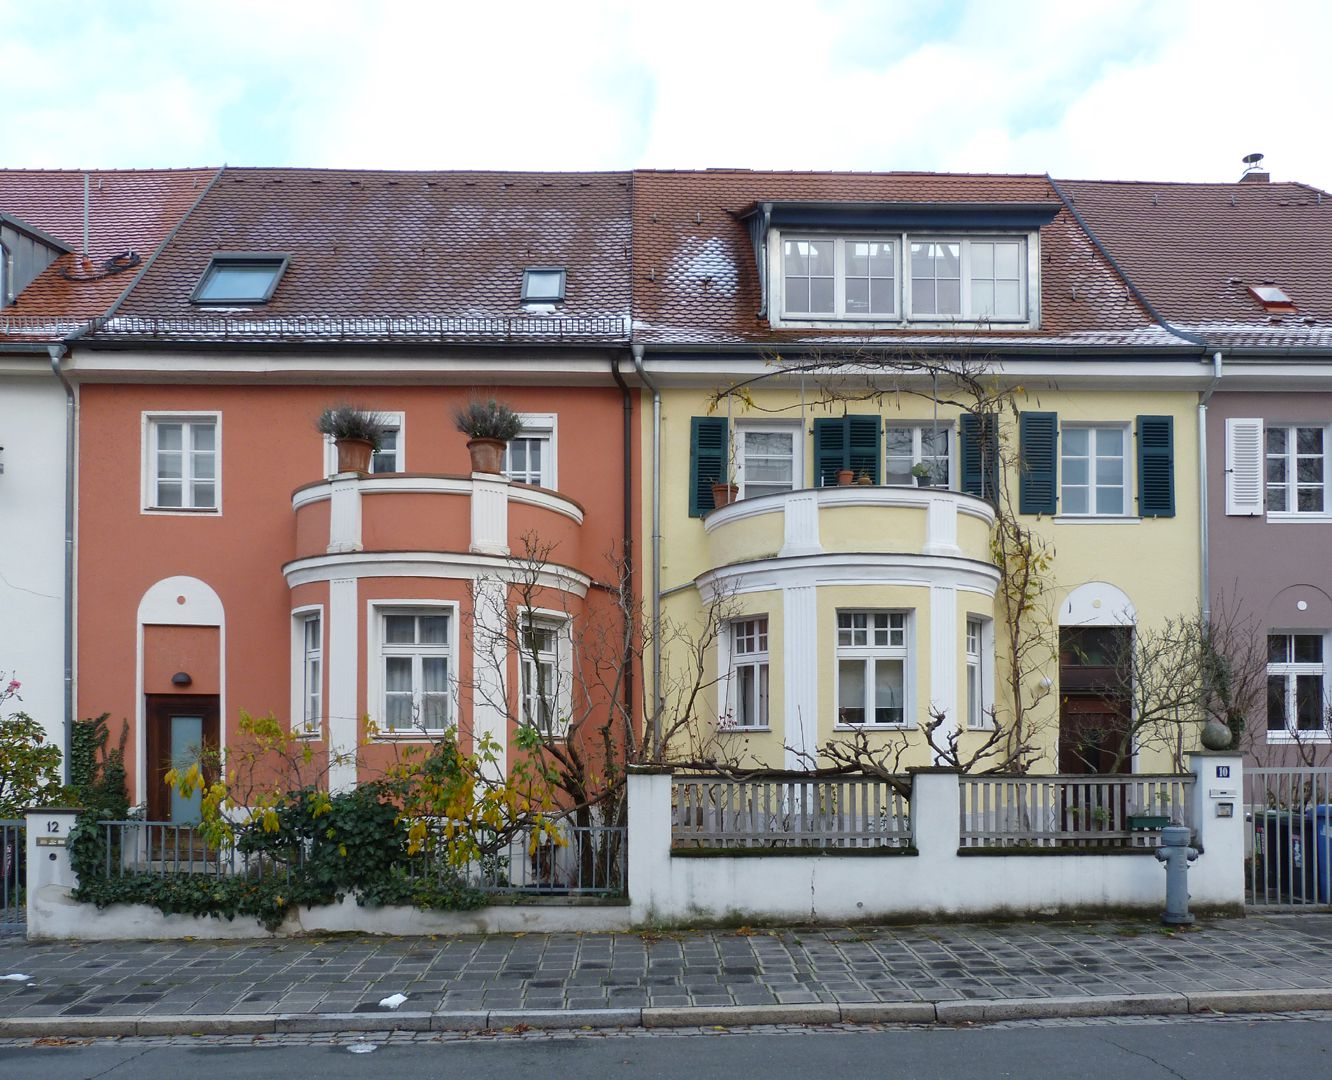 Row of houses in Danziger Straße Front view